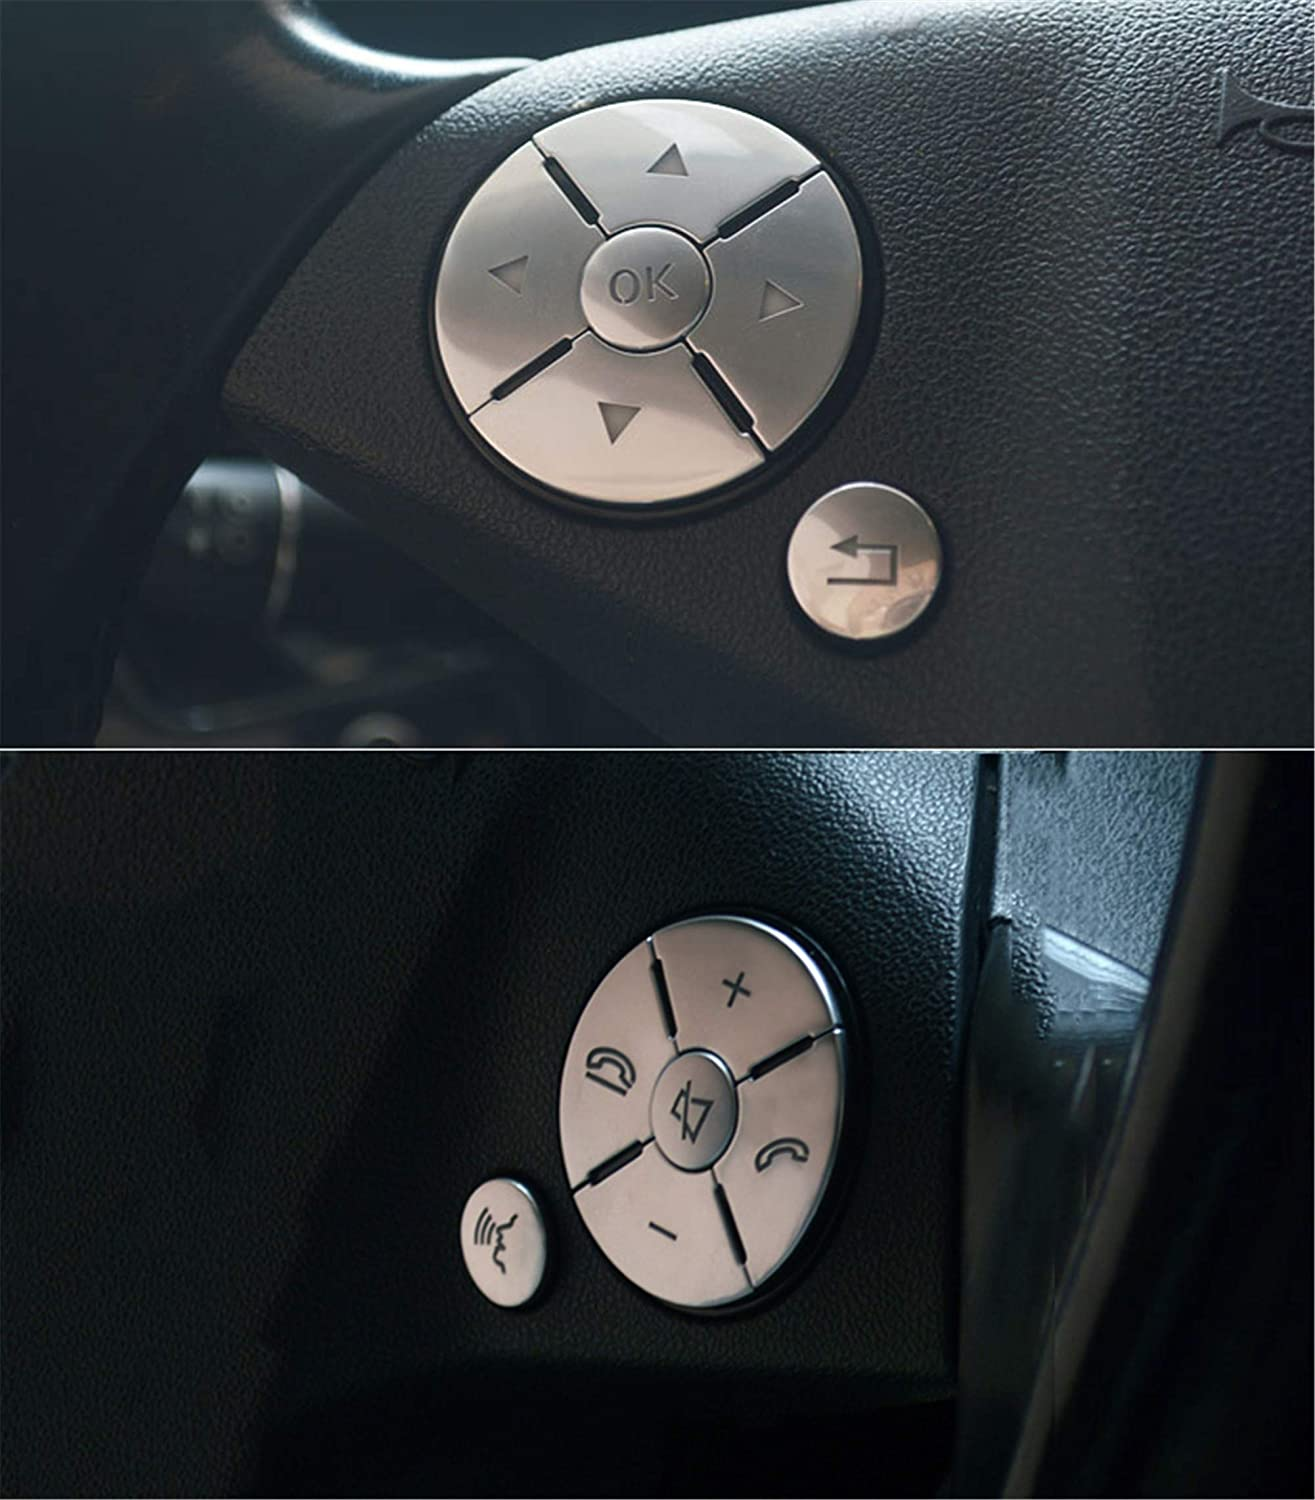 Steering Wheel Button Switch Trim Cover Sticker-ons for Mercedes-benz A B S CLA C117 SL GLA X156 GLE Class GLS//SLC CLS Class